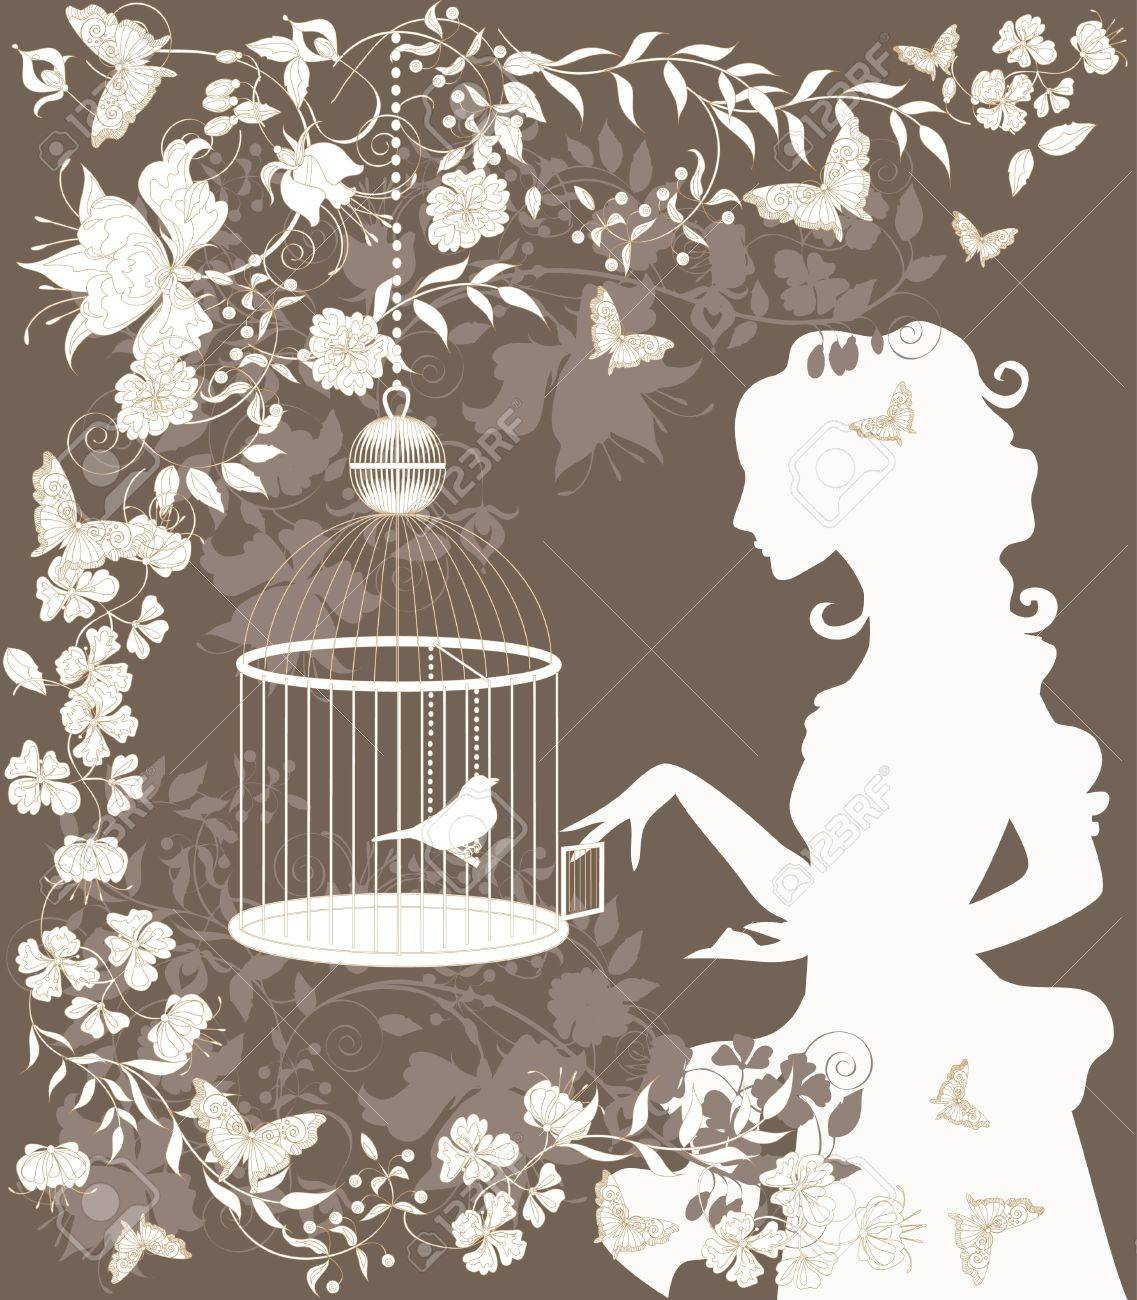 Vintage background with flowers, bird and girl silhouette. Stock Vector - 9711556